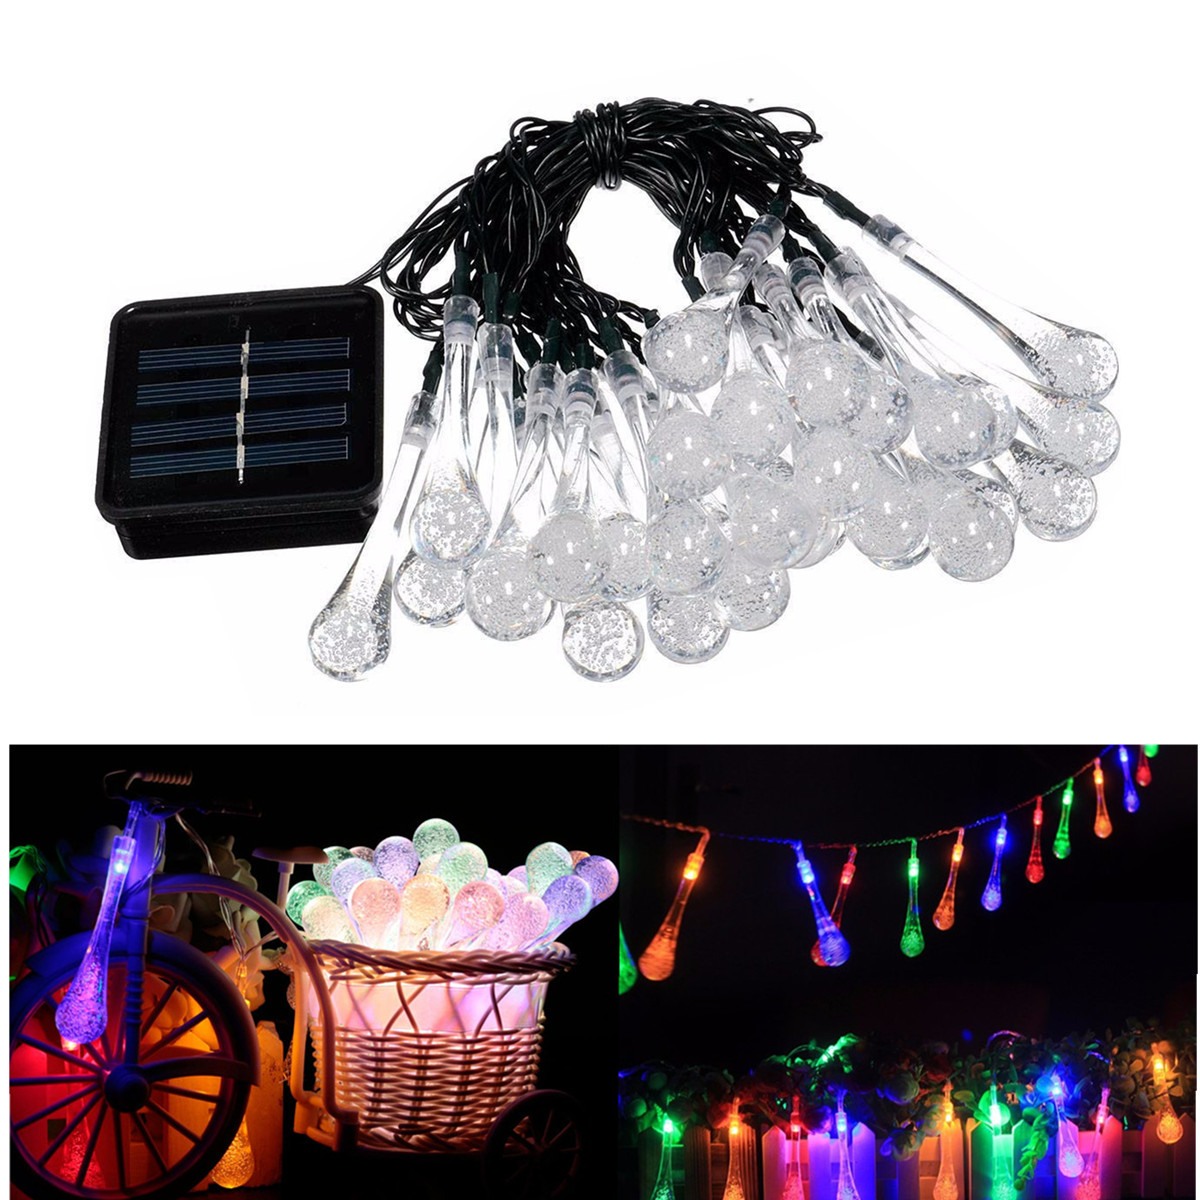 6.5M 30 LED Solar Powered Fairy String Lights Water Drop Decorative Garden Lawn Patio Christmas Waterproof Outdoor Solar Lamps